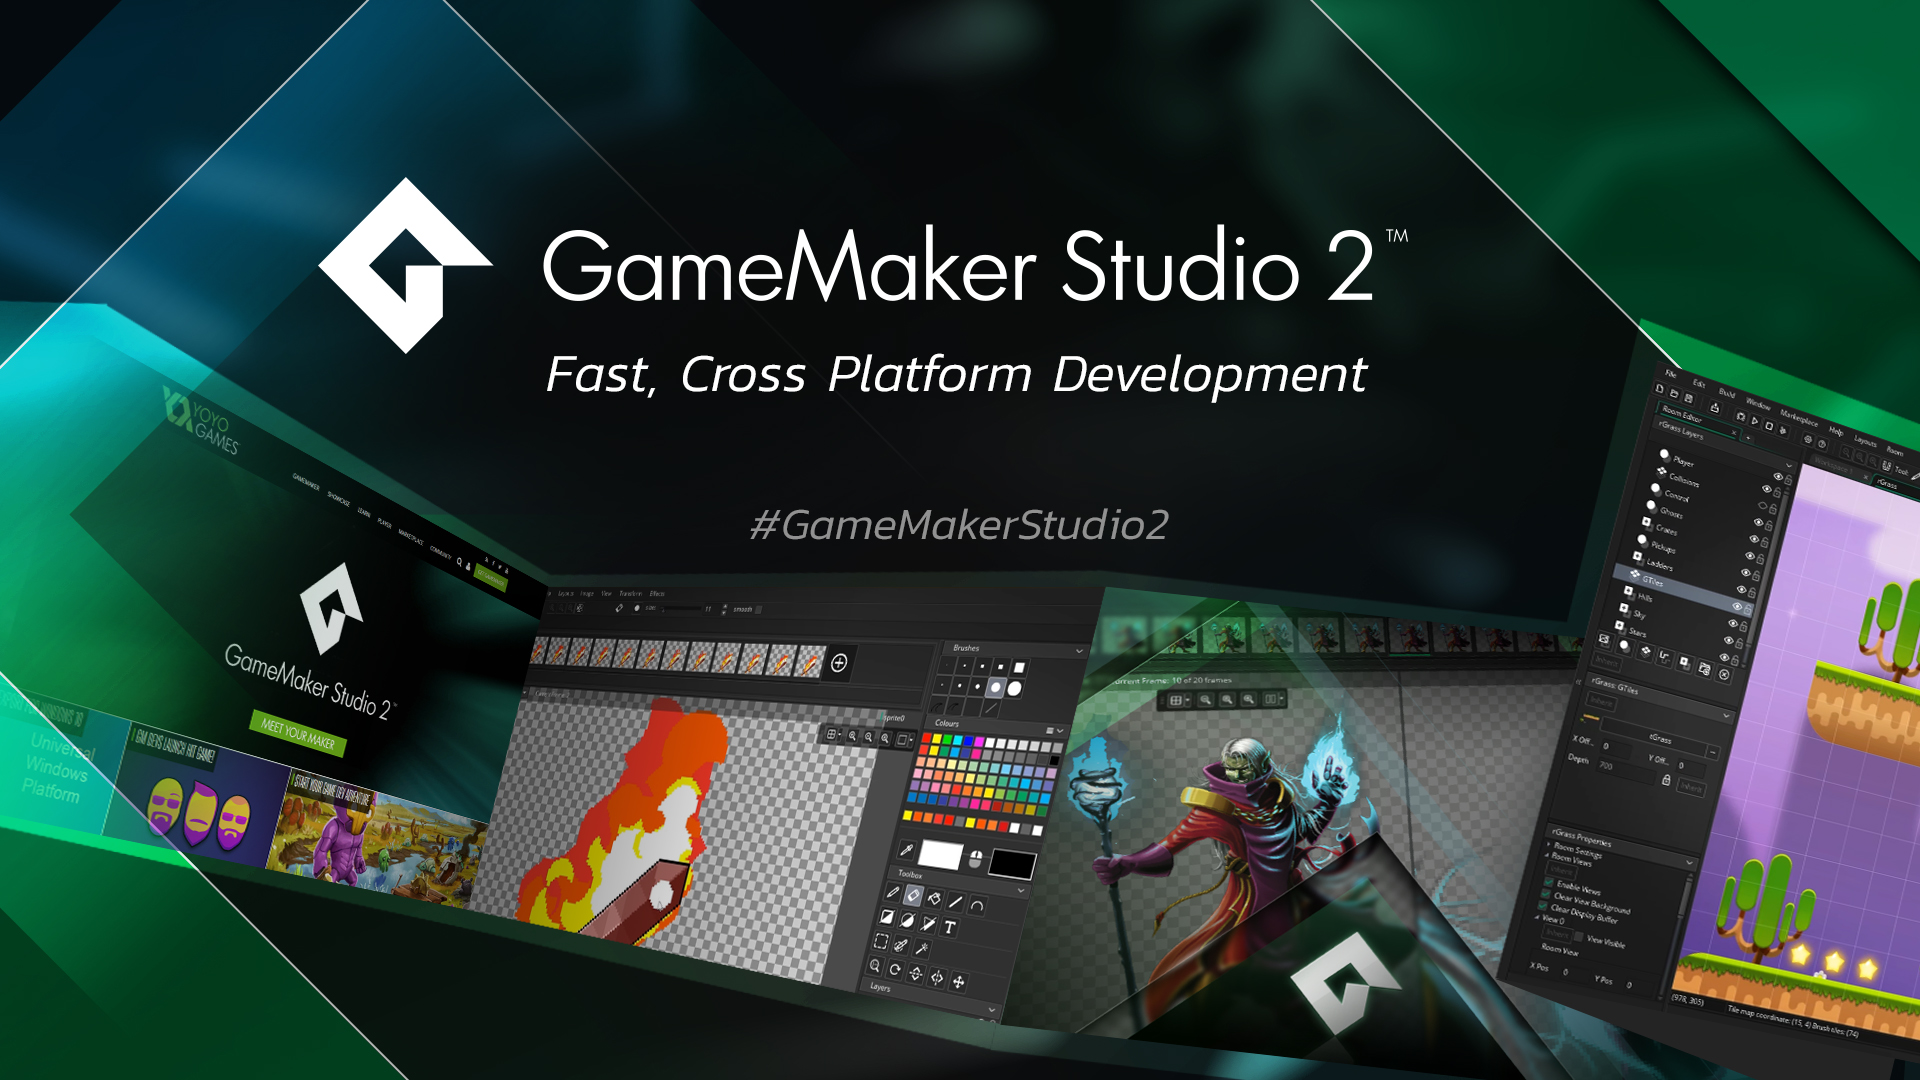 GameMaker Studio 2. Make a game with the complete game development tool